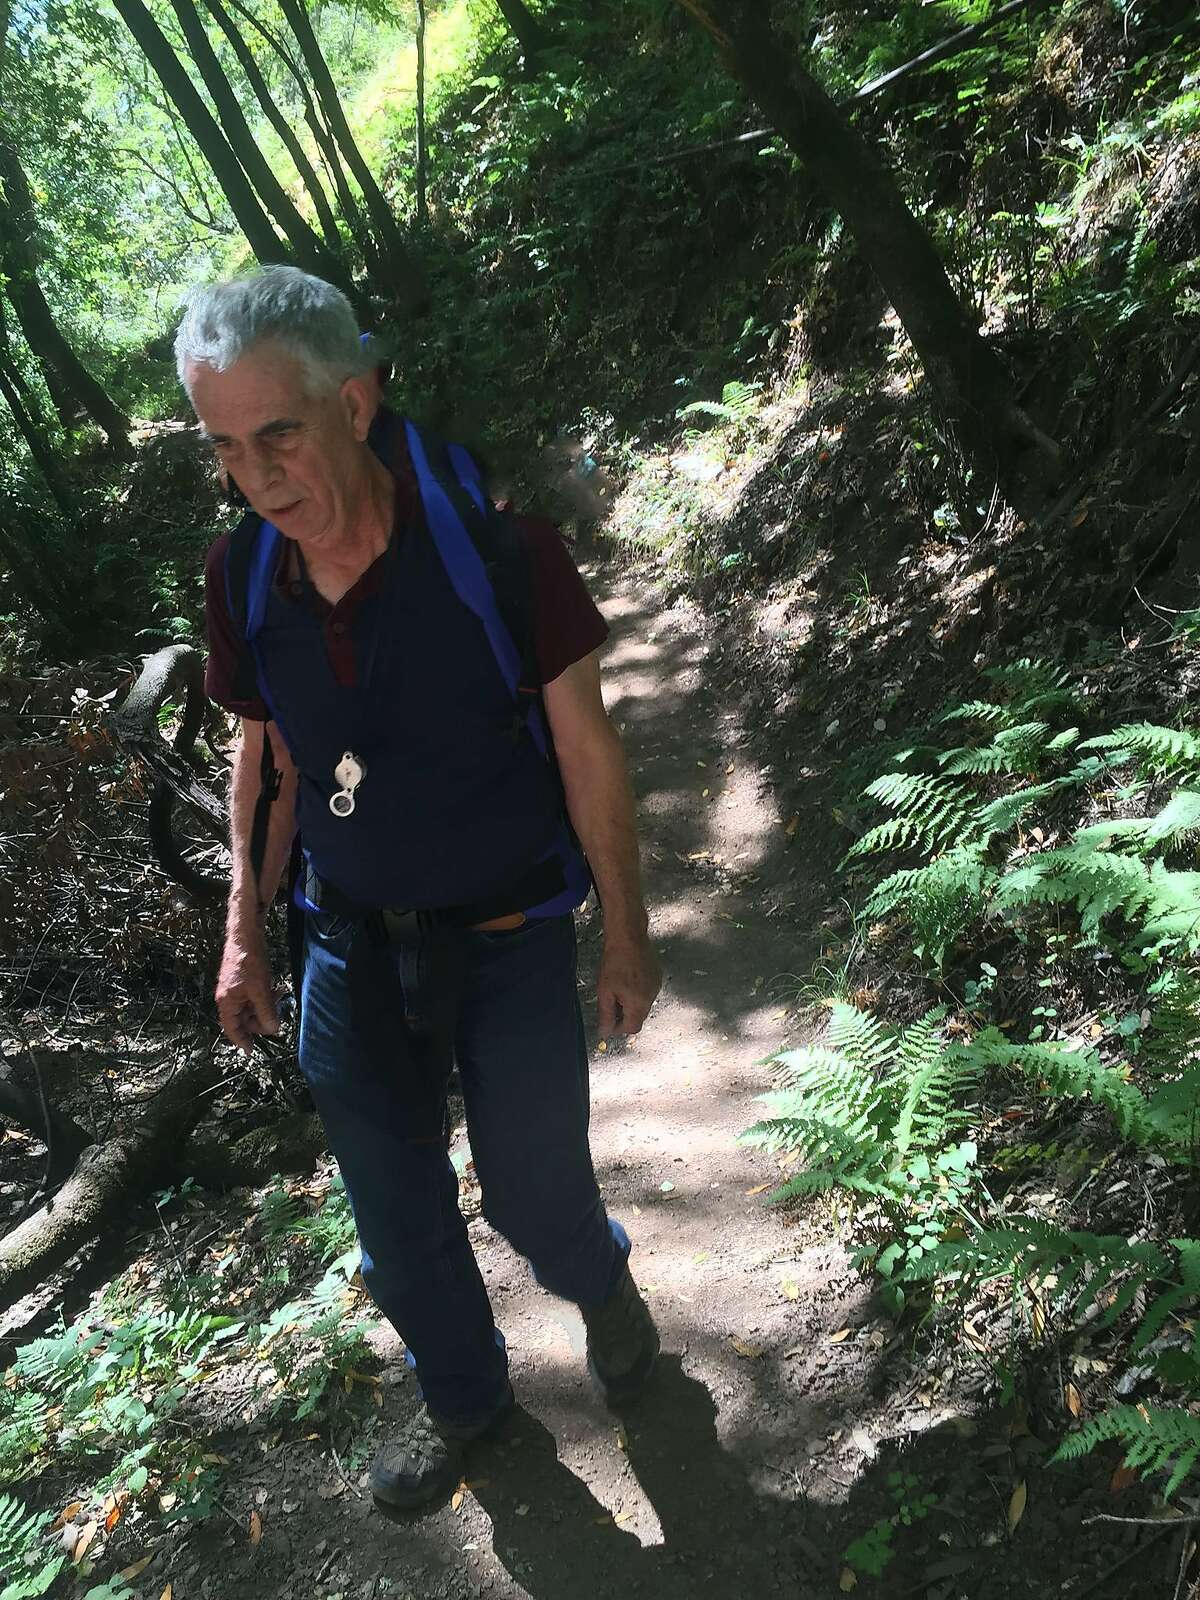 Officials found hiker Robert Bennett Tuesday night about a day and a half after he was last seen in Marin County.